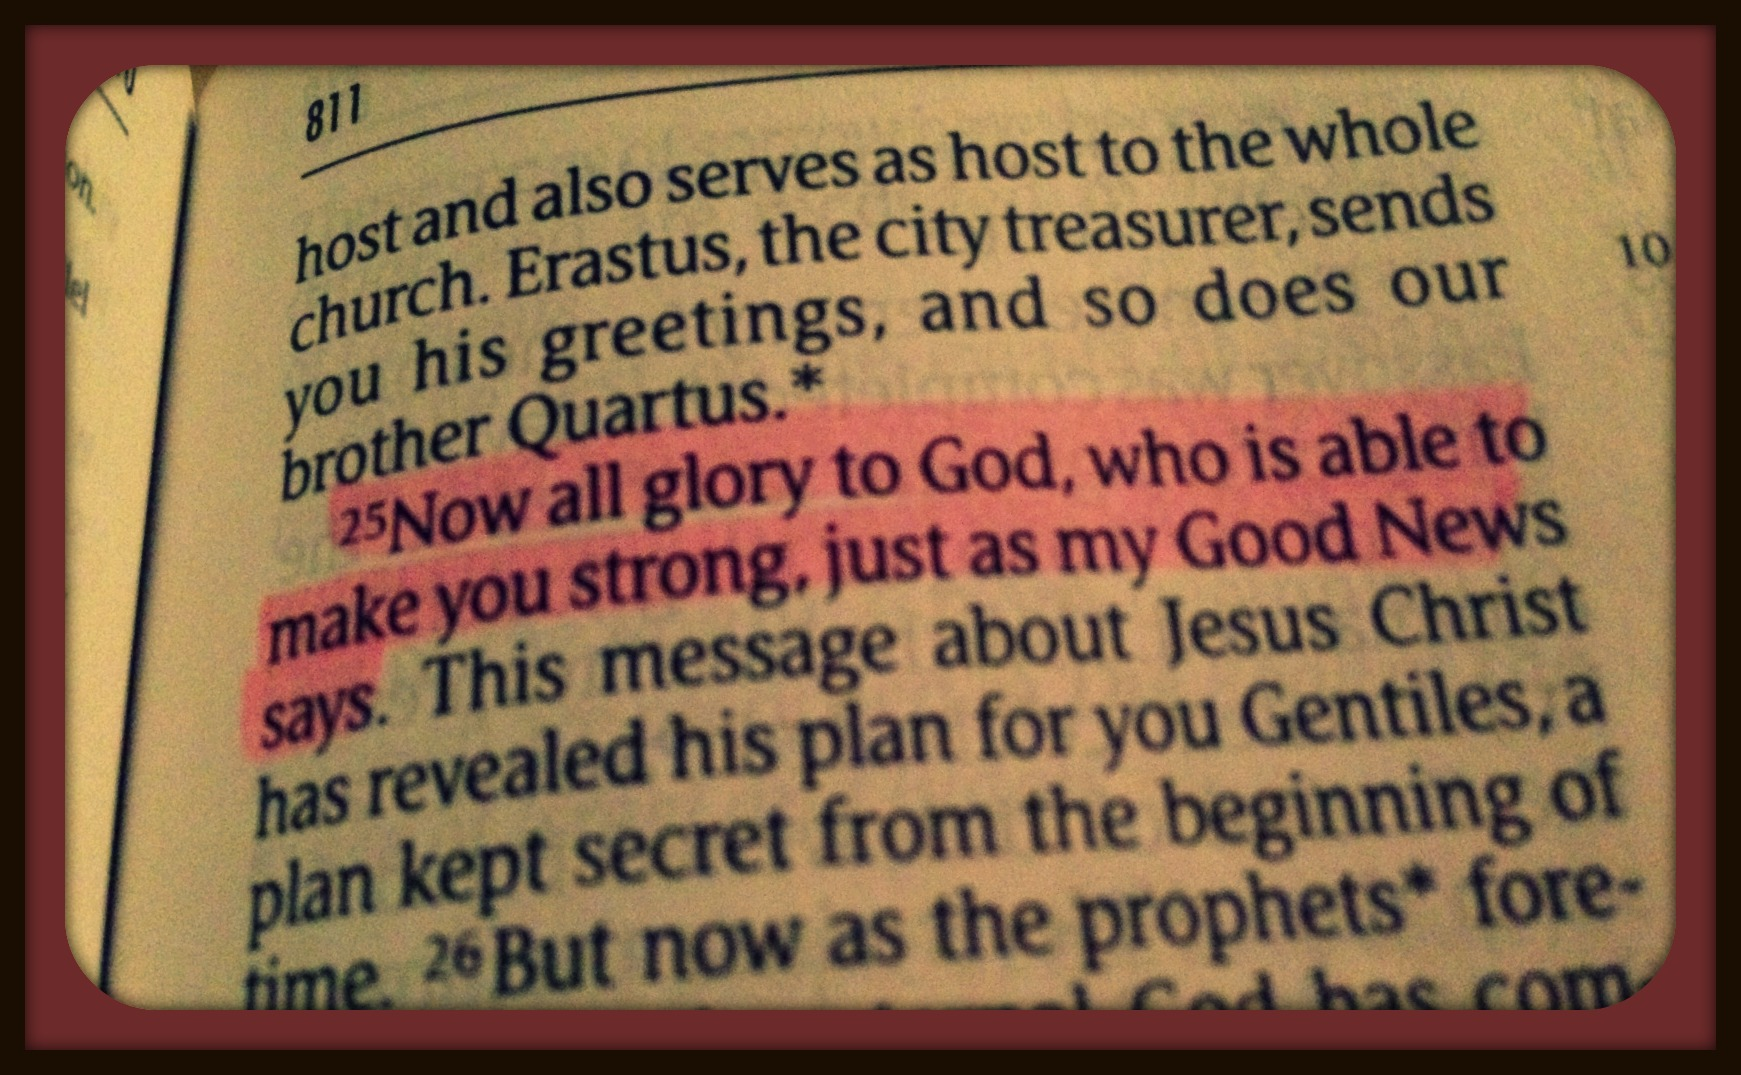 The glory is His.